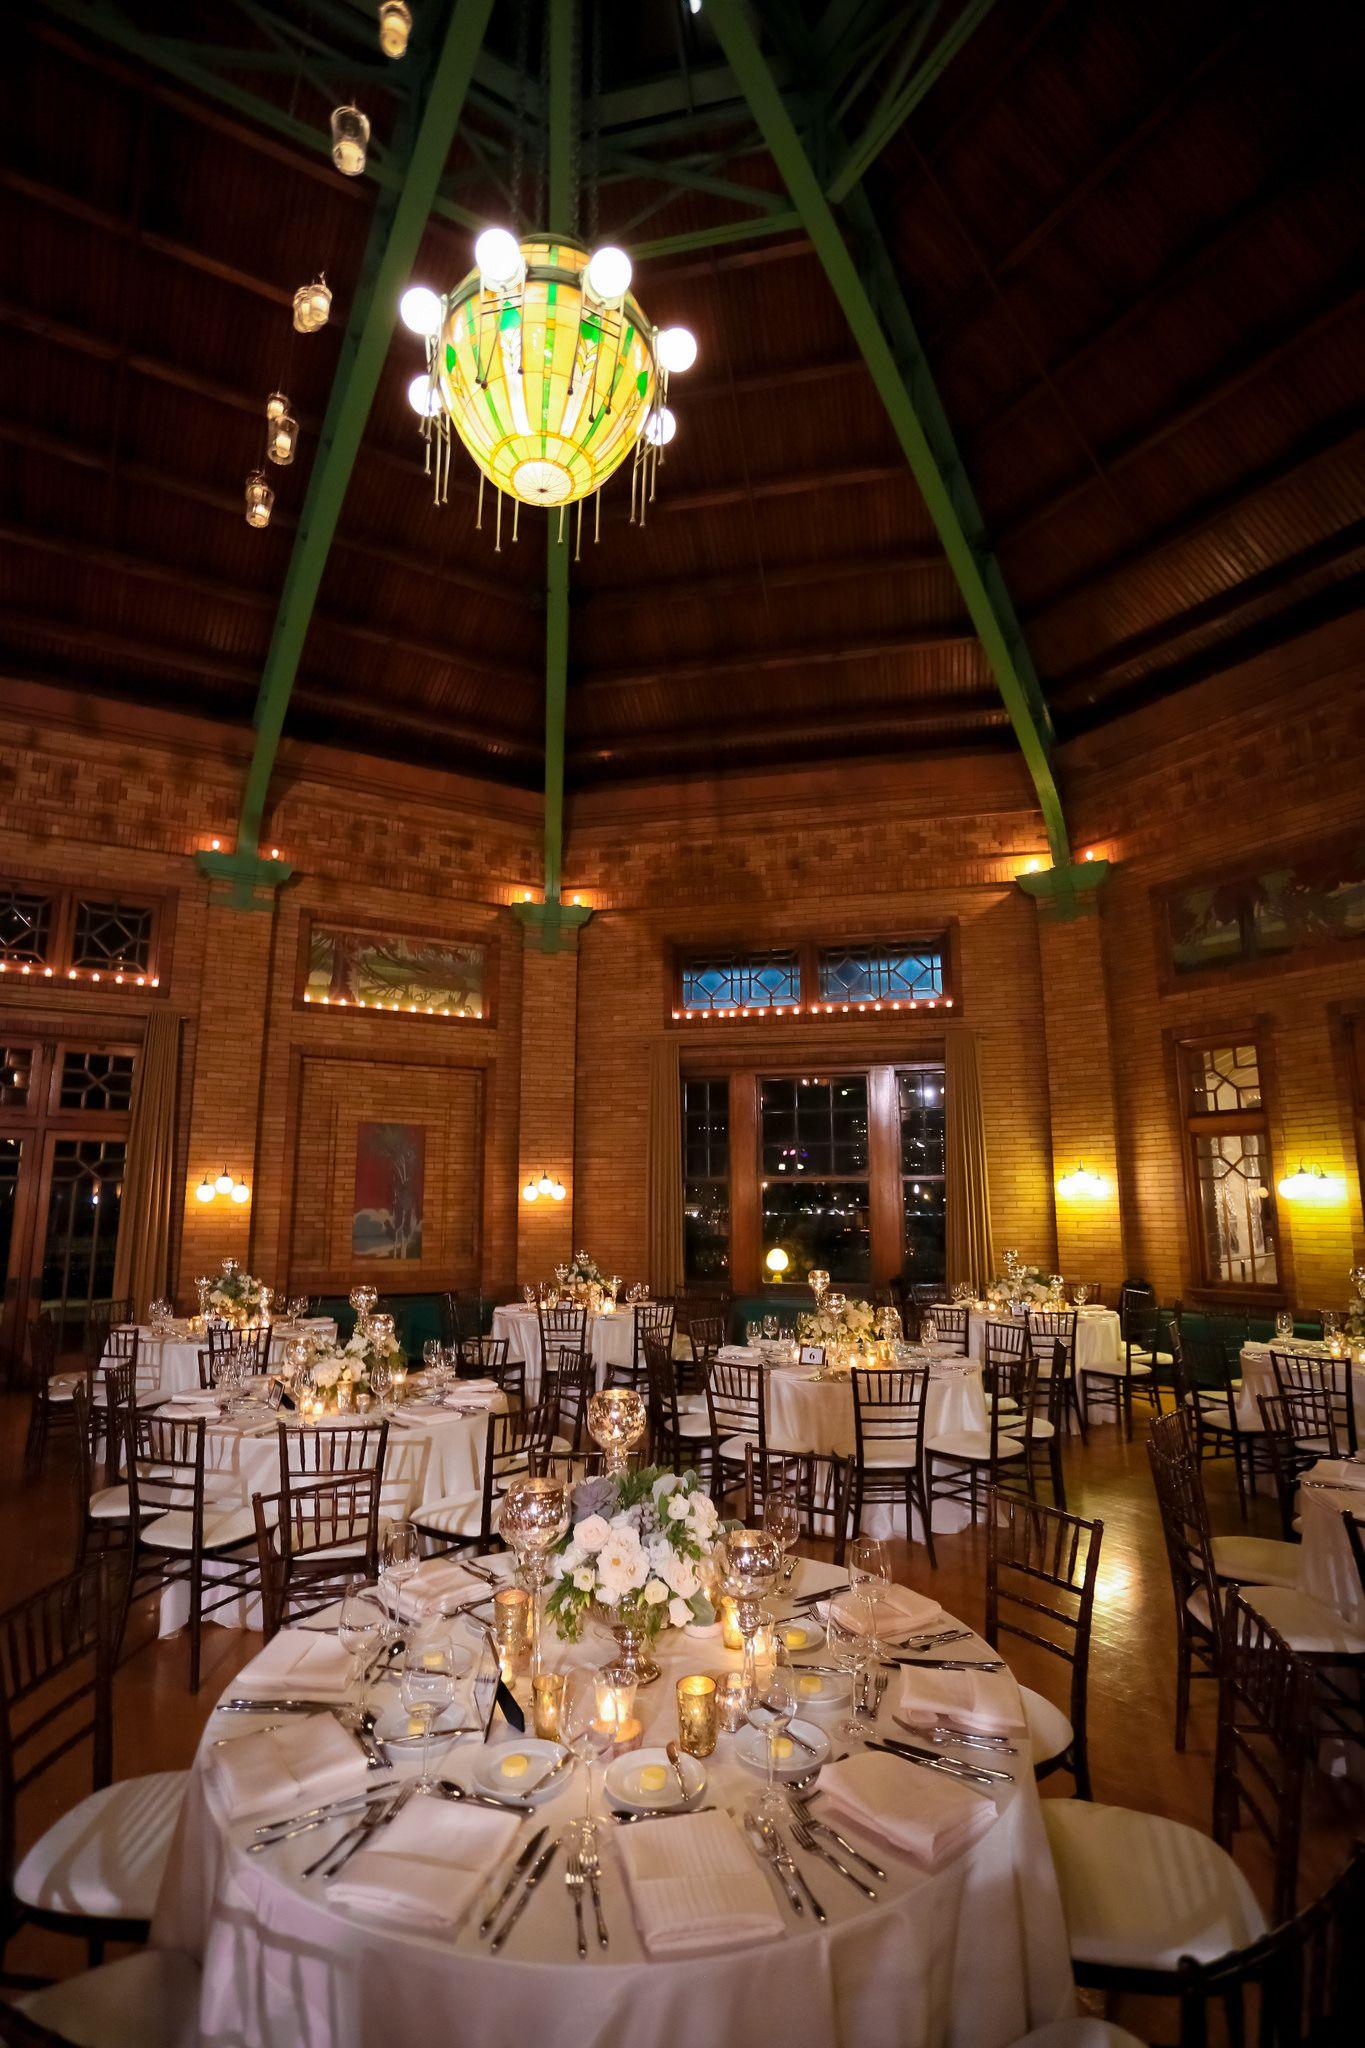 Cafe Brauer Is A Dream Blisschicago Weddings Tables Decor Candles Lighting Cool Chandeliers Wedding Lights Chandelier Design